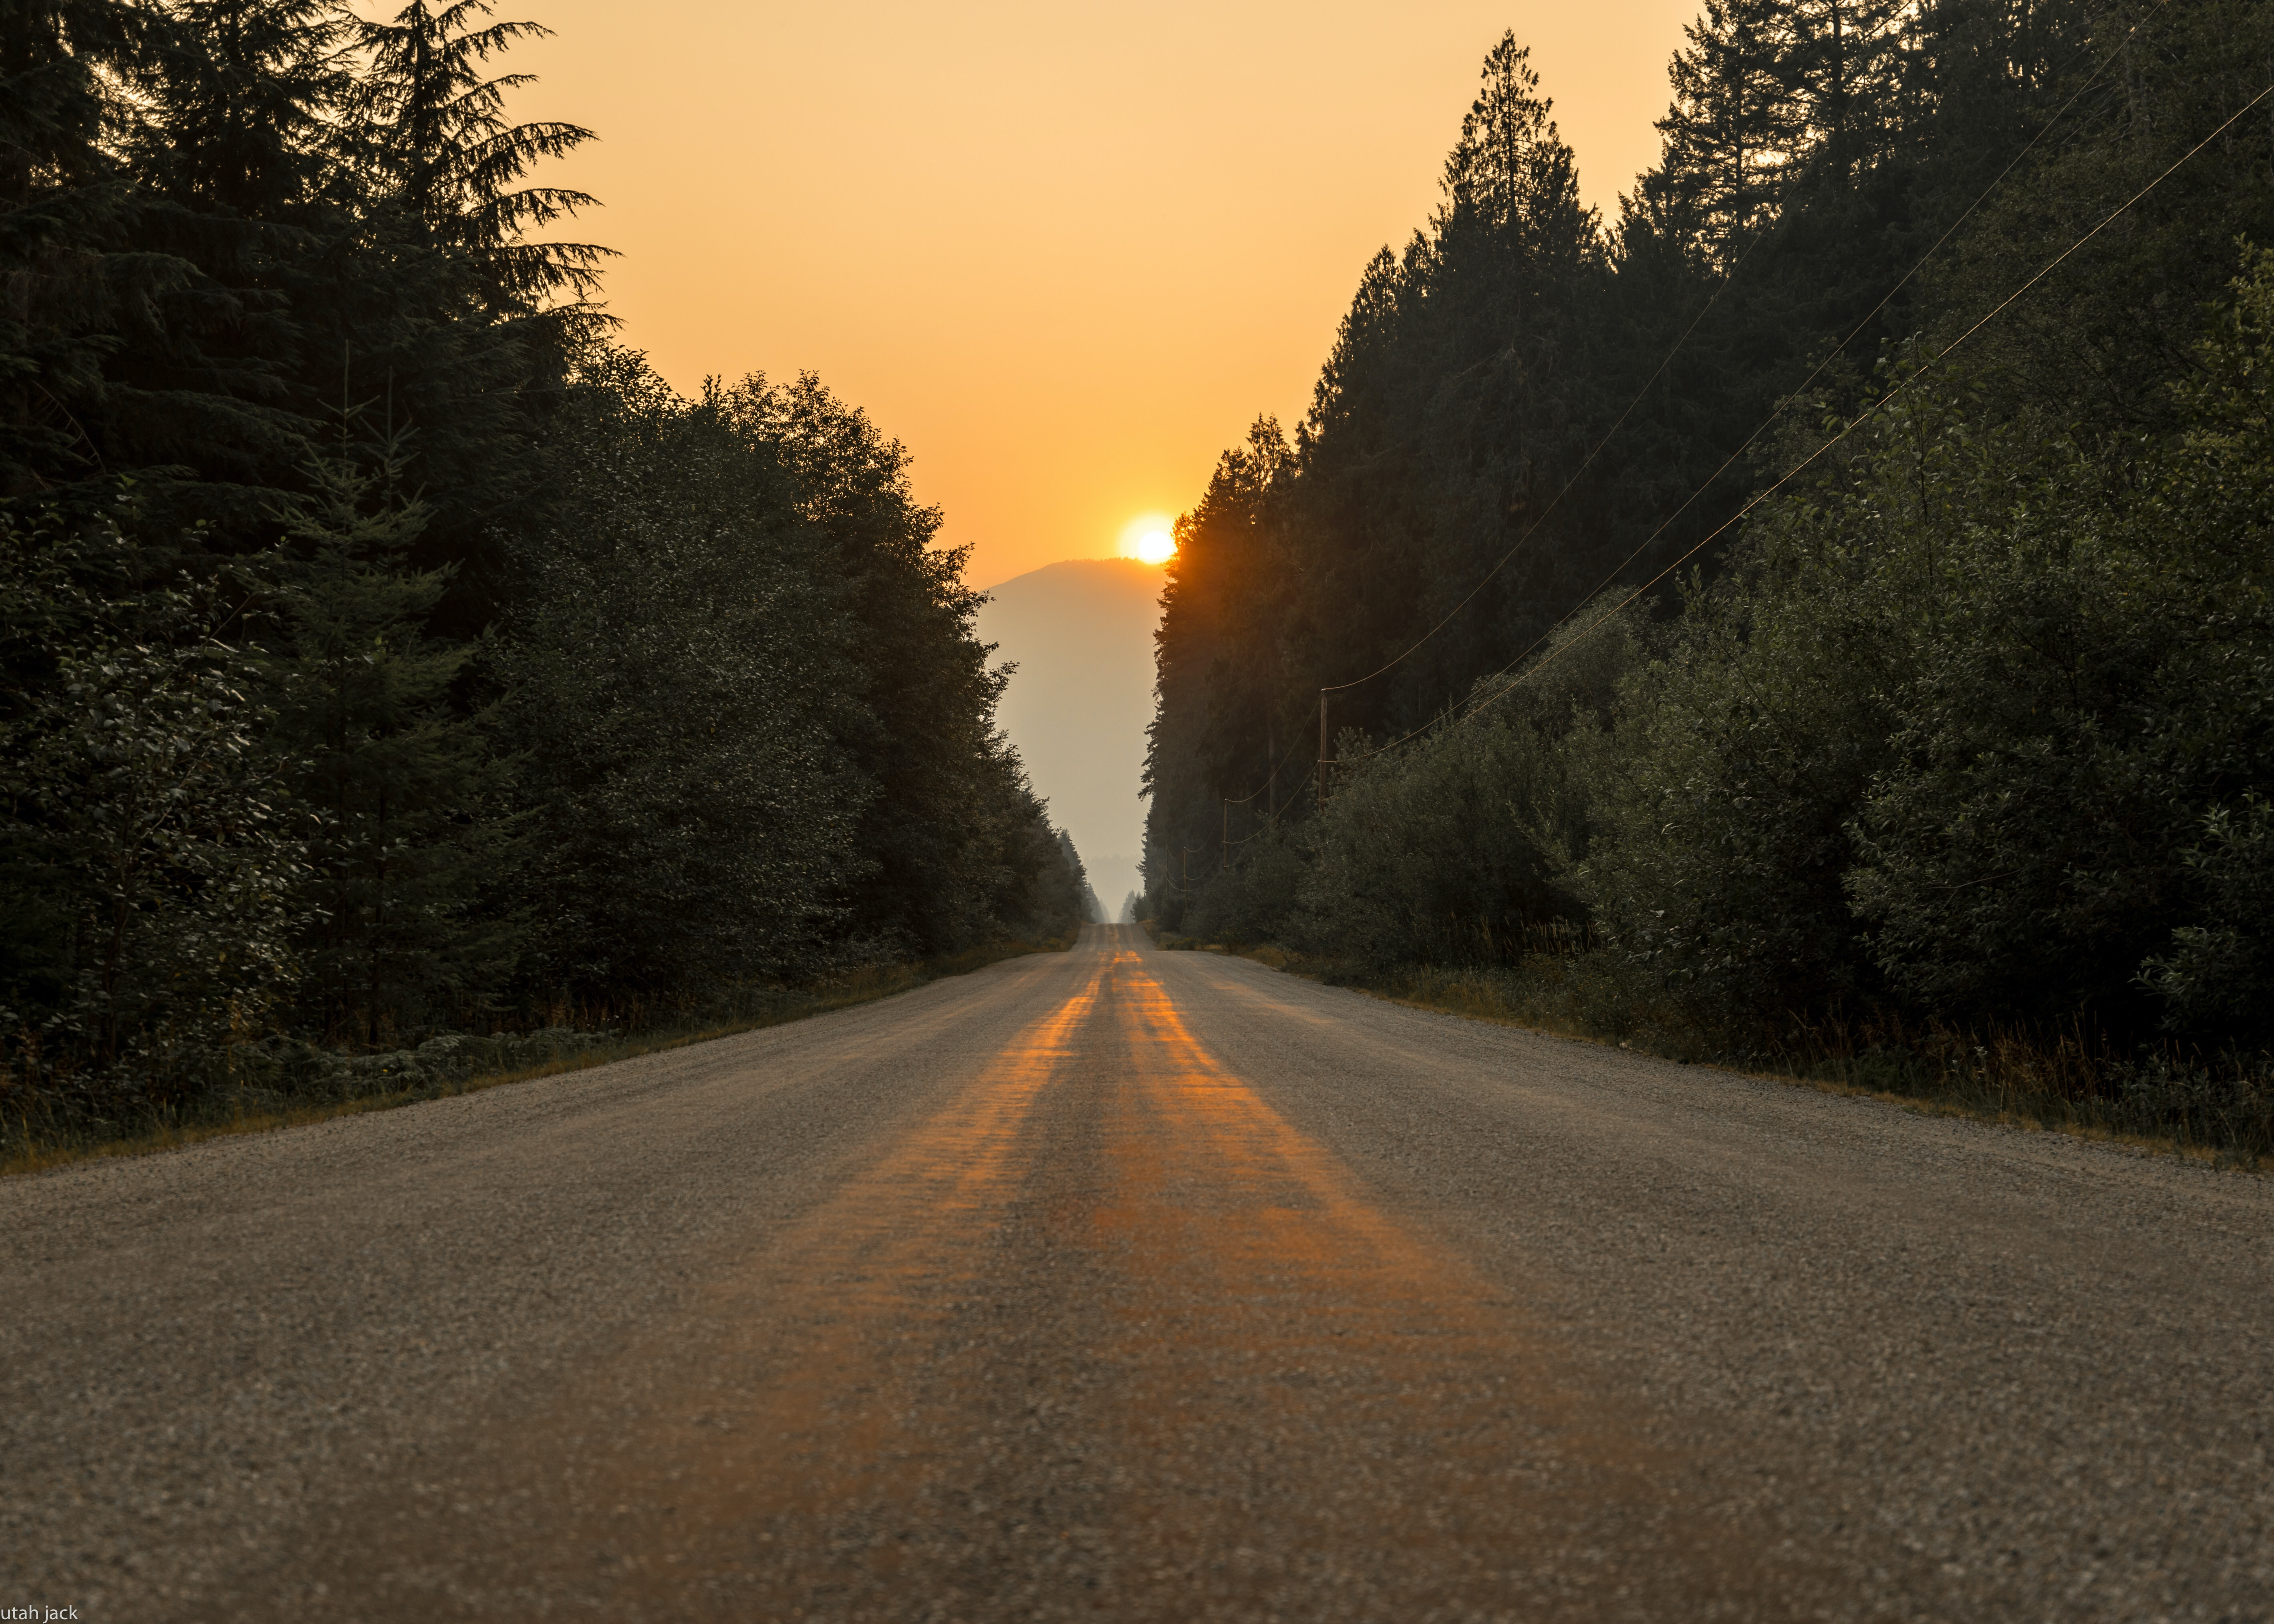 gray dirt road in between trees at sunset